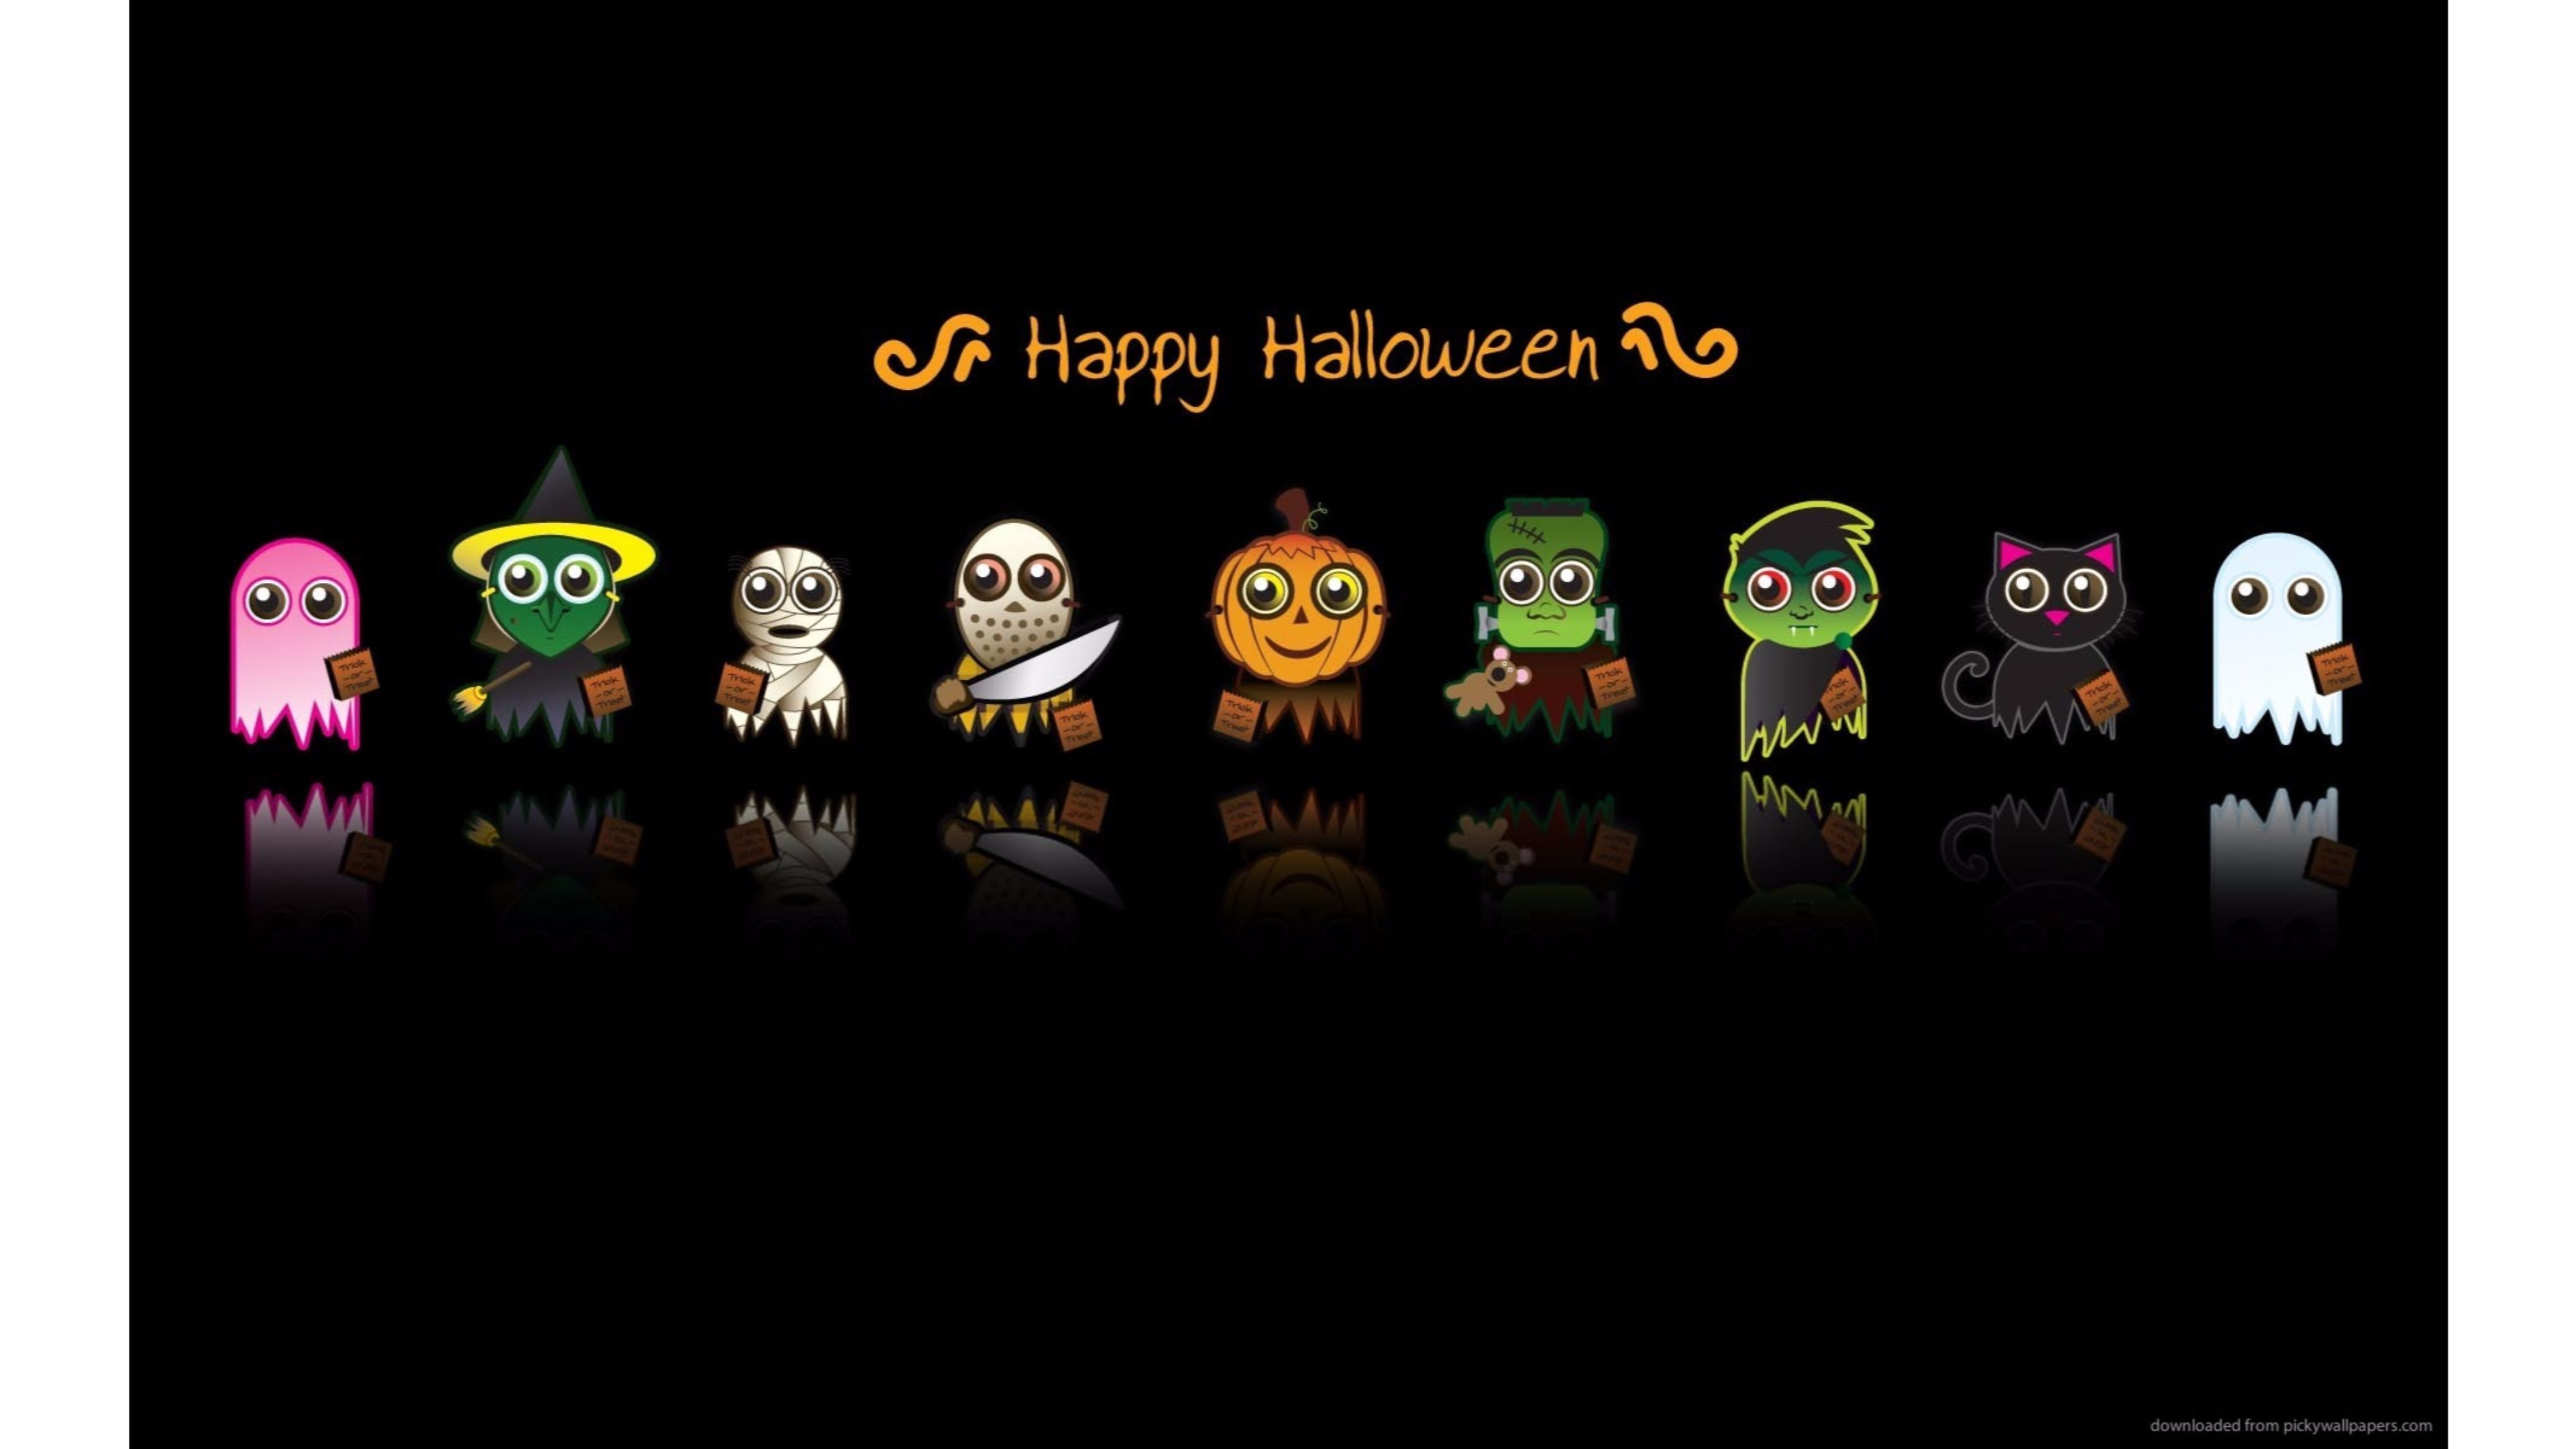 Halloween wallpaper 2016 (With images) Halloween desktop